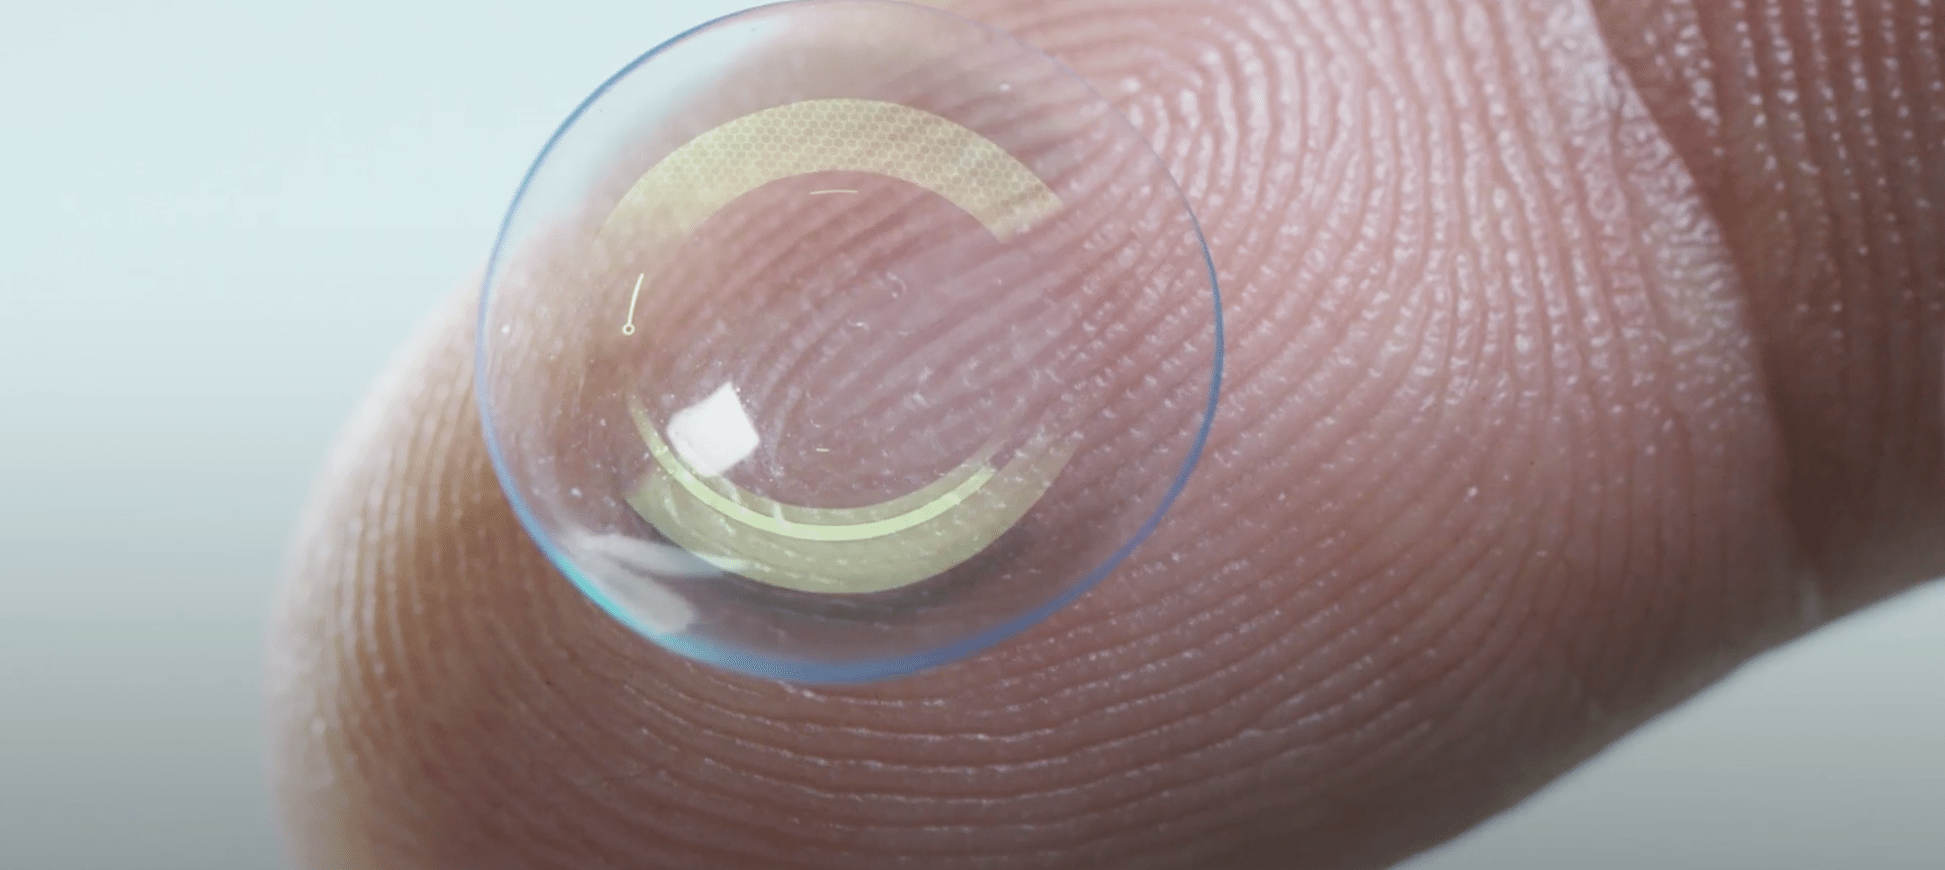 What If Eye Contact Lenses Could Record Corporate Video?